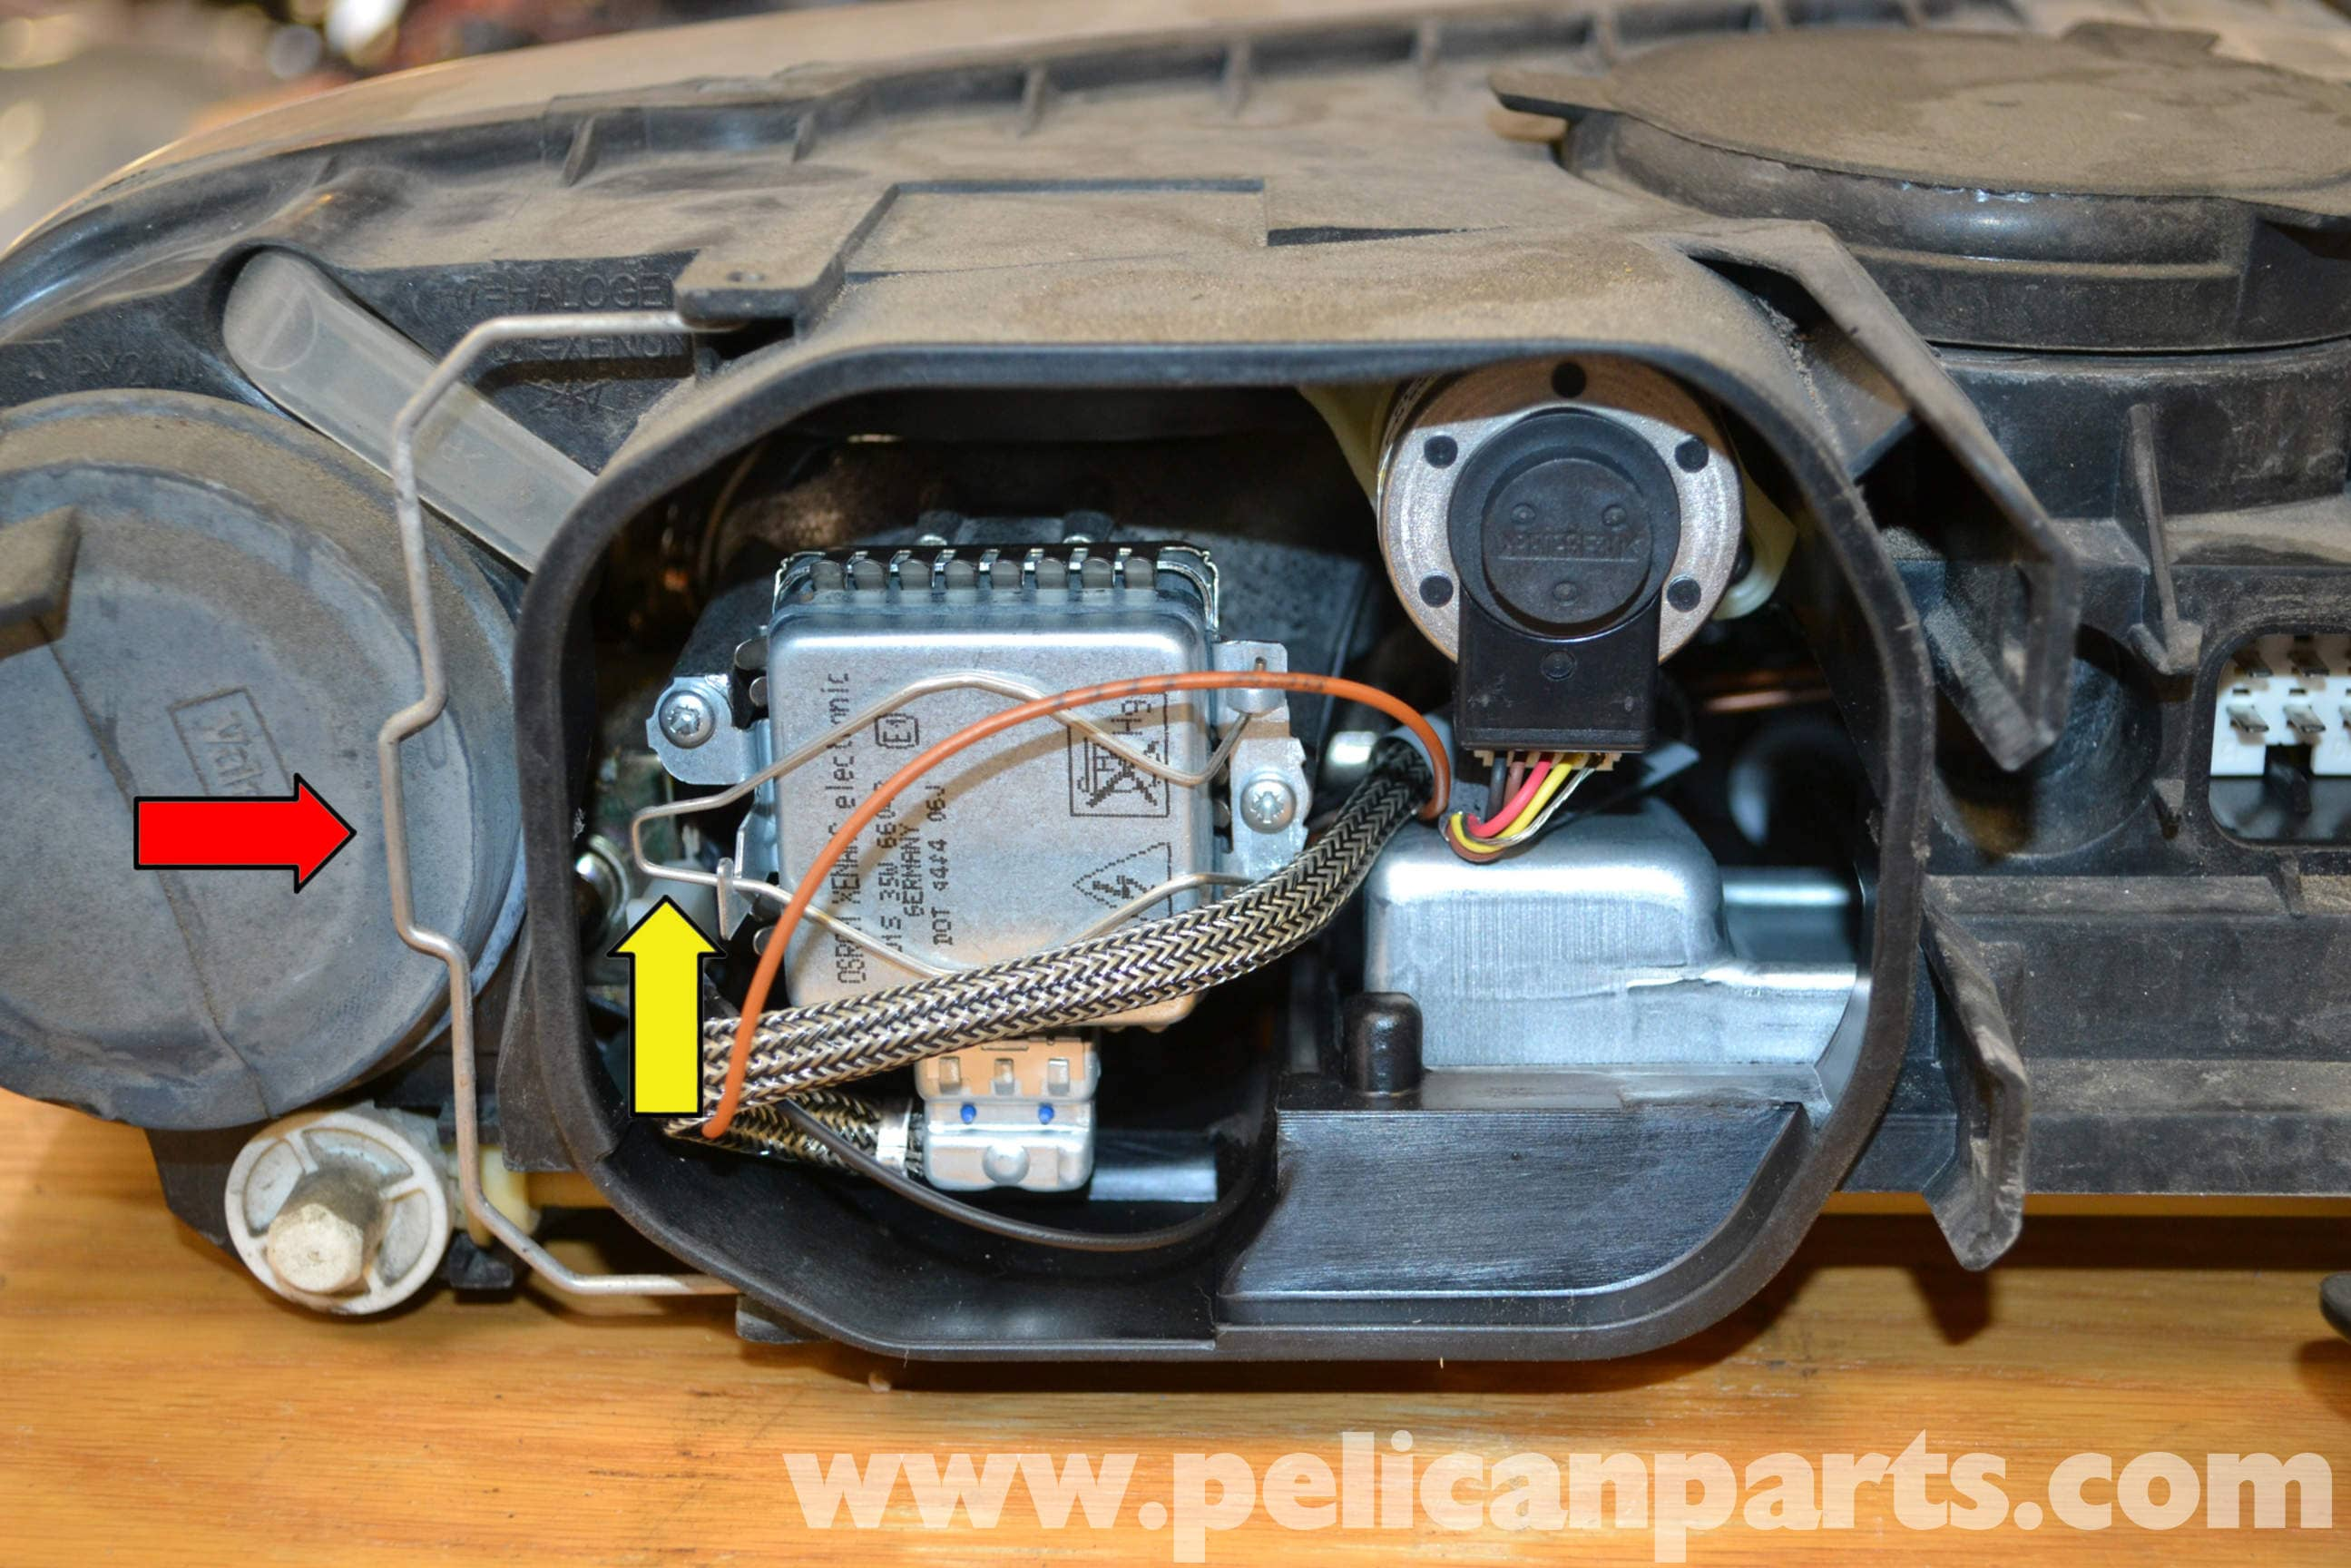 Touareg Headlight Bulb Diagram Great Installation Of Wiring H4 Led Pelican Technical Article Volkswagen And Rh Pelicanparts Com